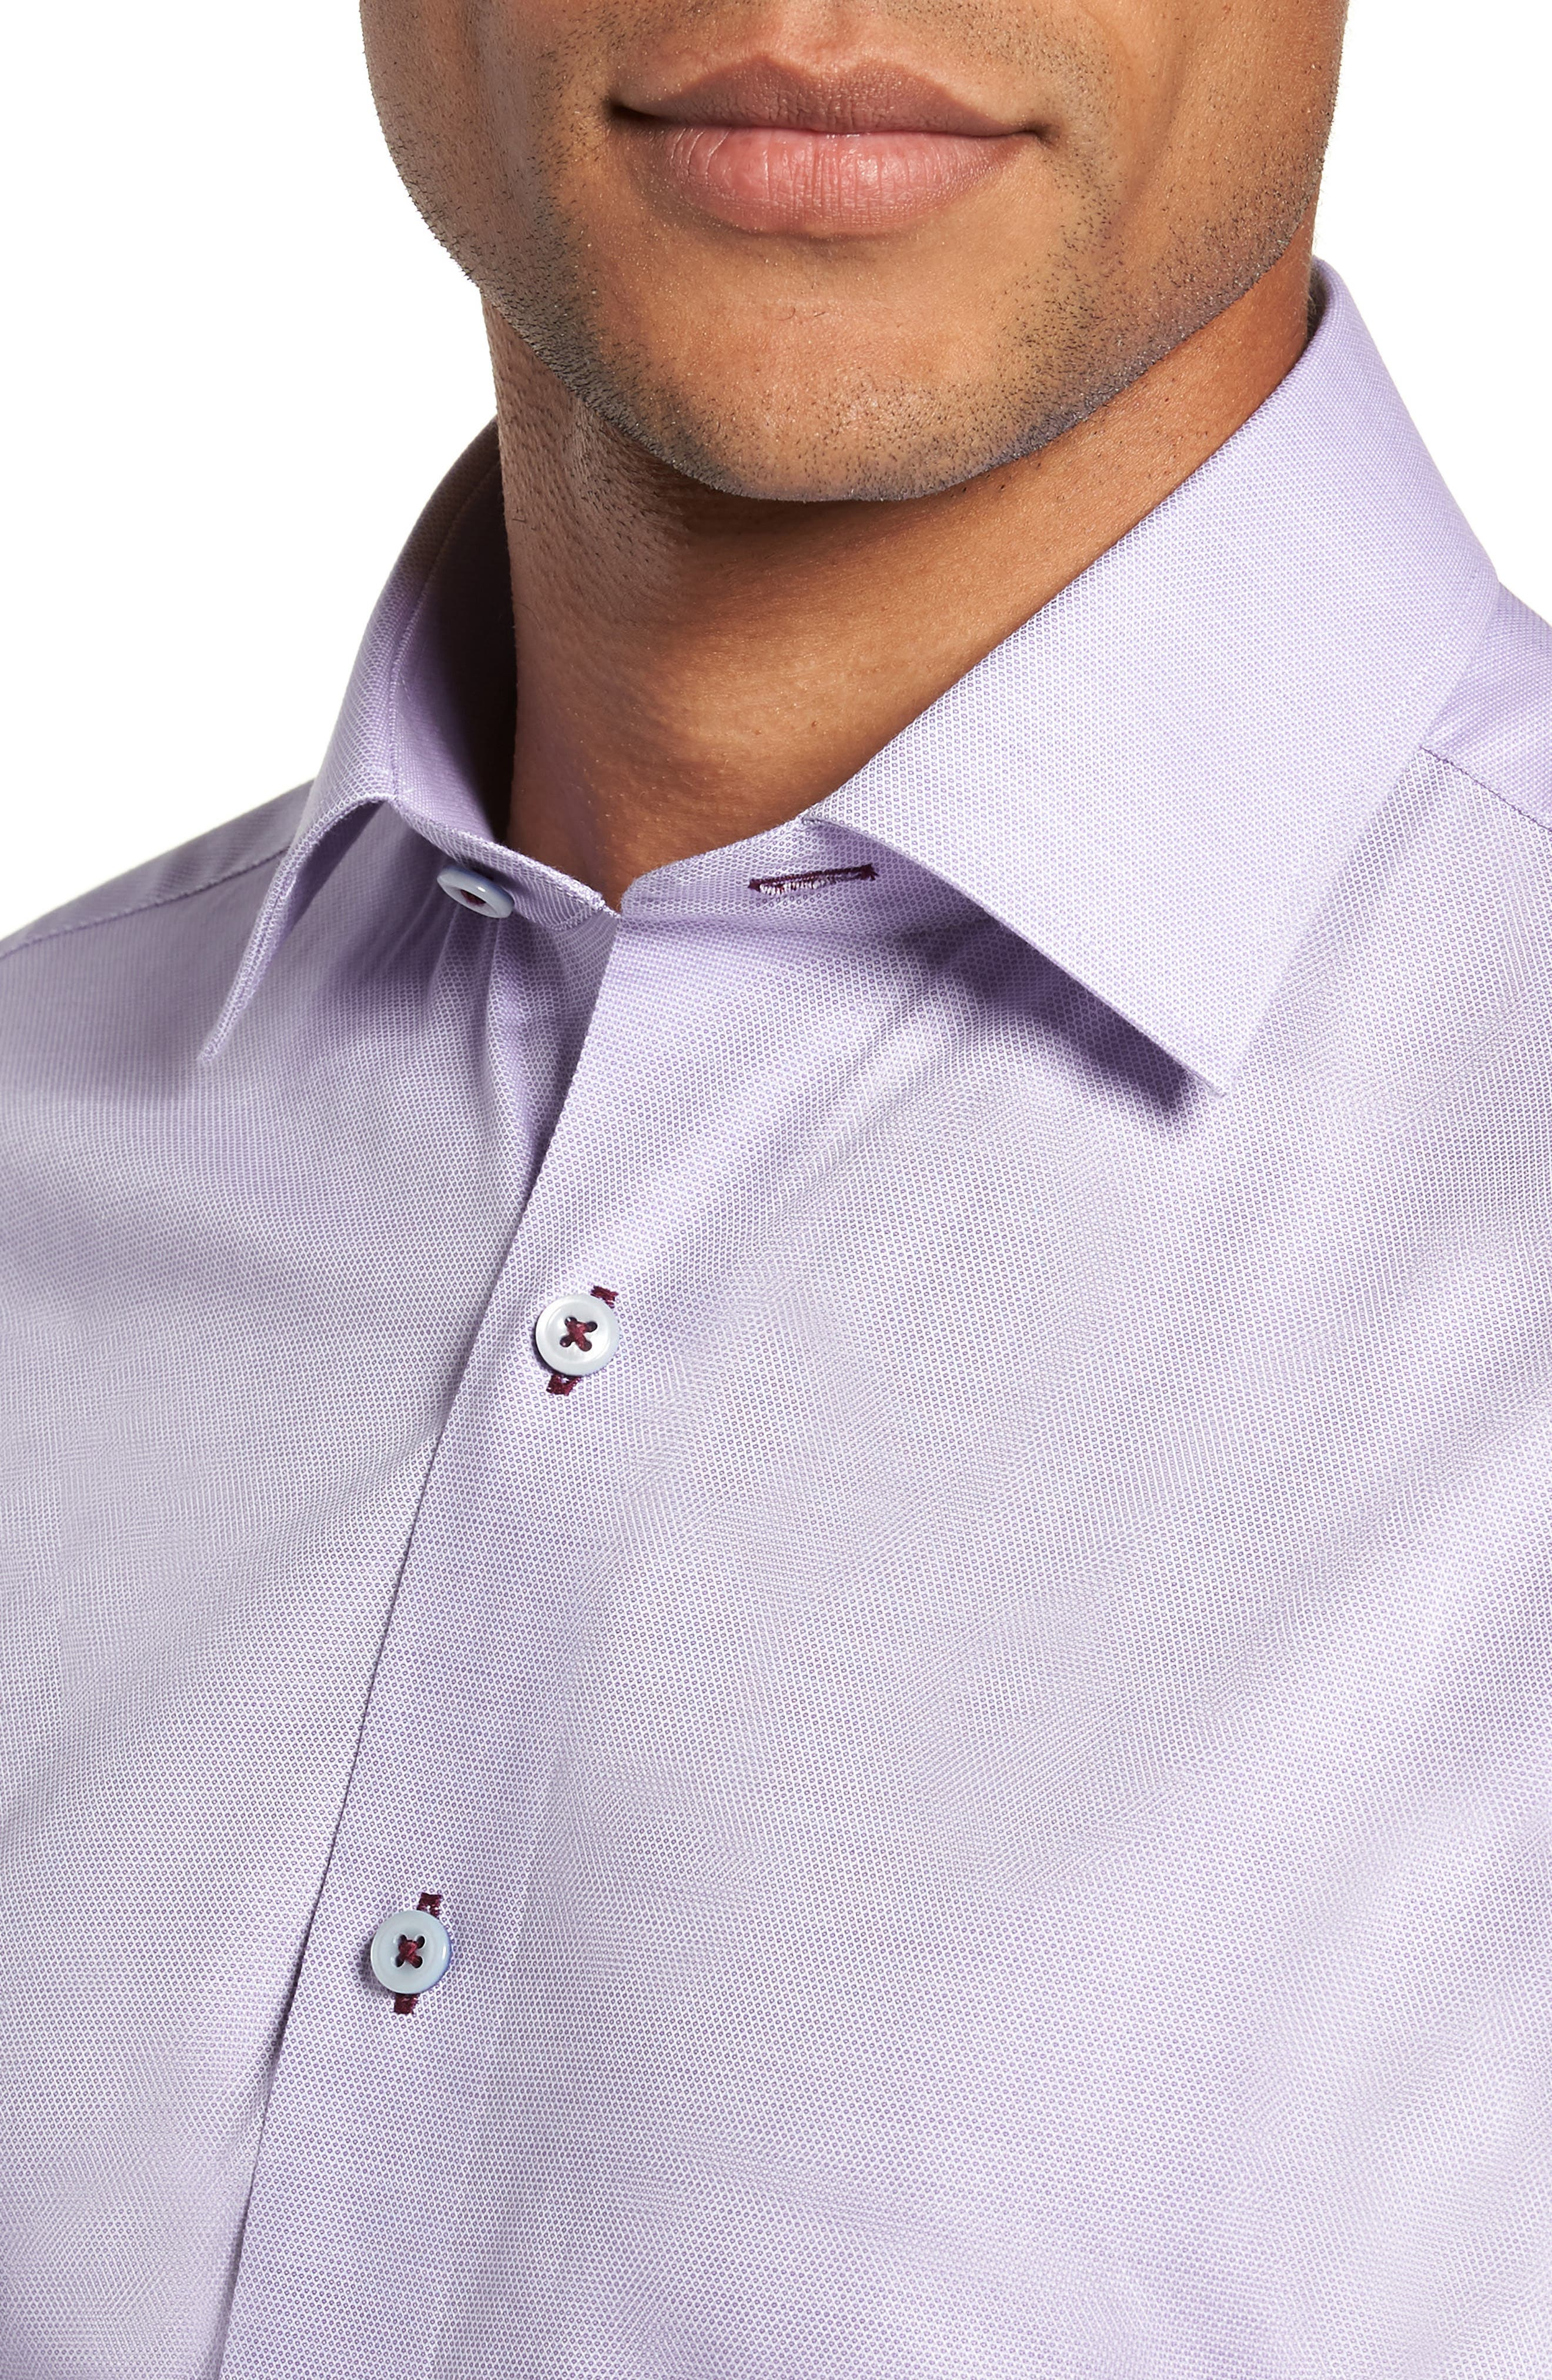 Trim Fit Solid Dress Shirt,                             Alternate thumbnail 2, color,                             530